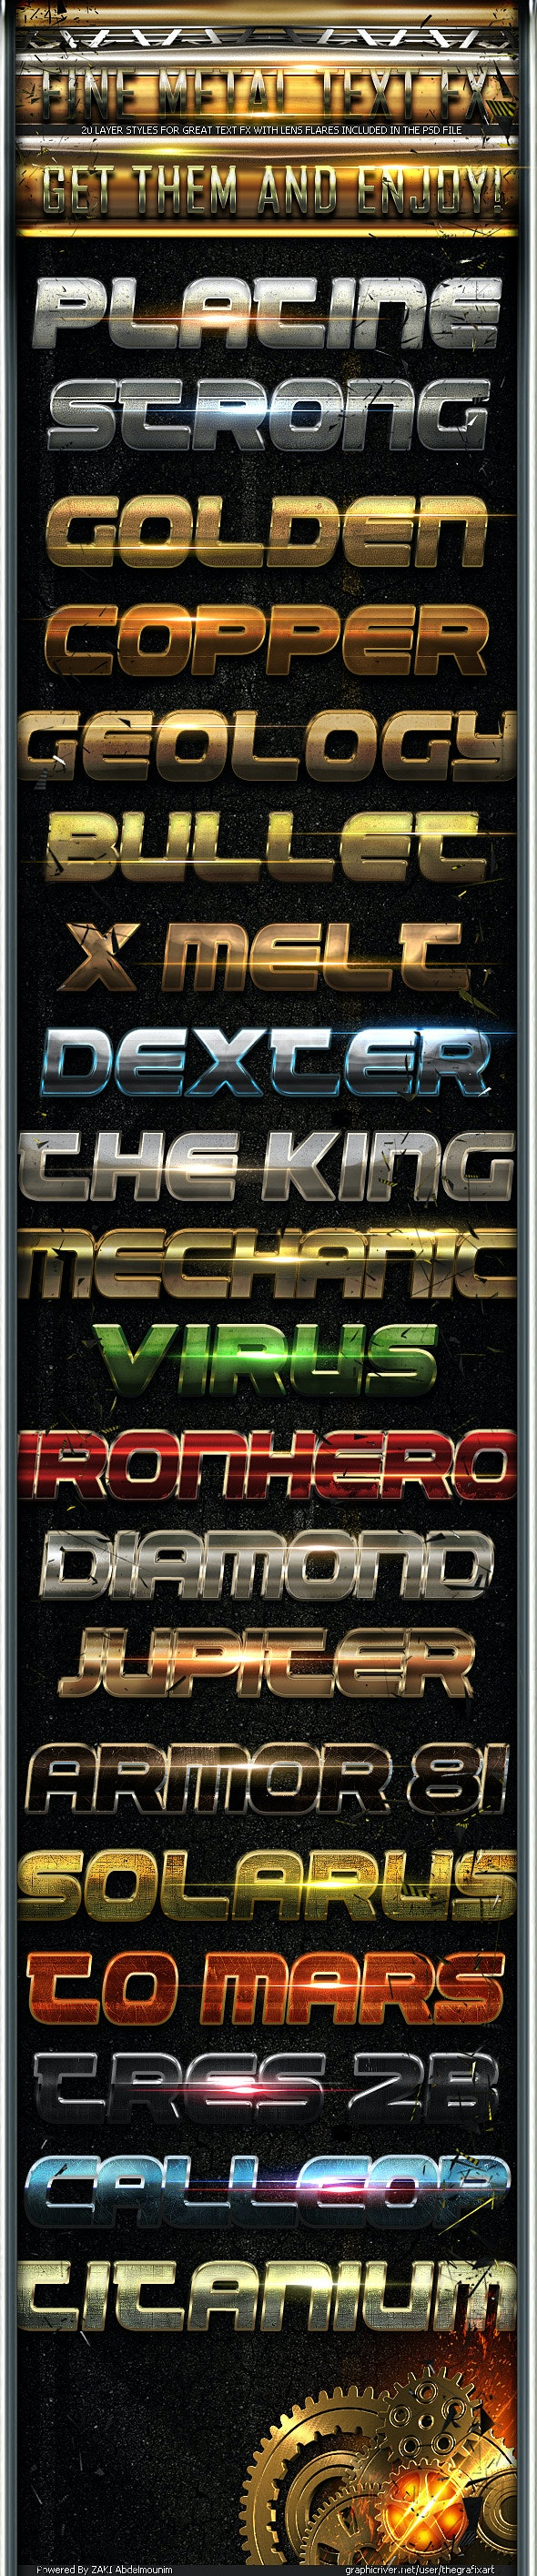 Fine Metal Text FX 2 - Text Effects Styles